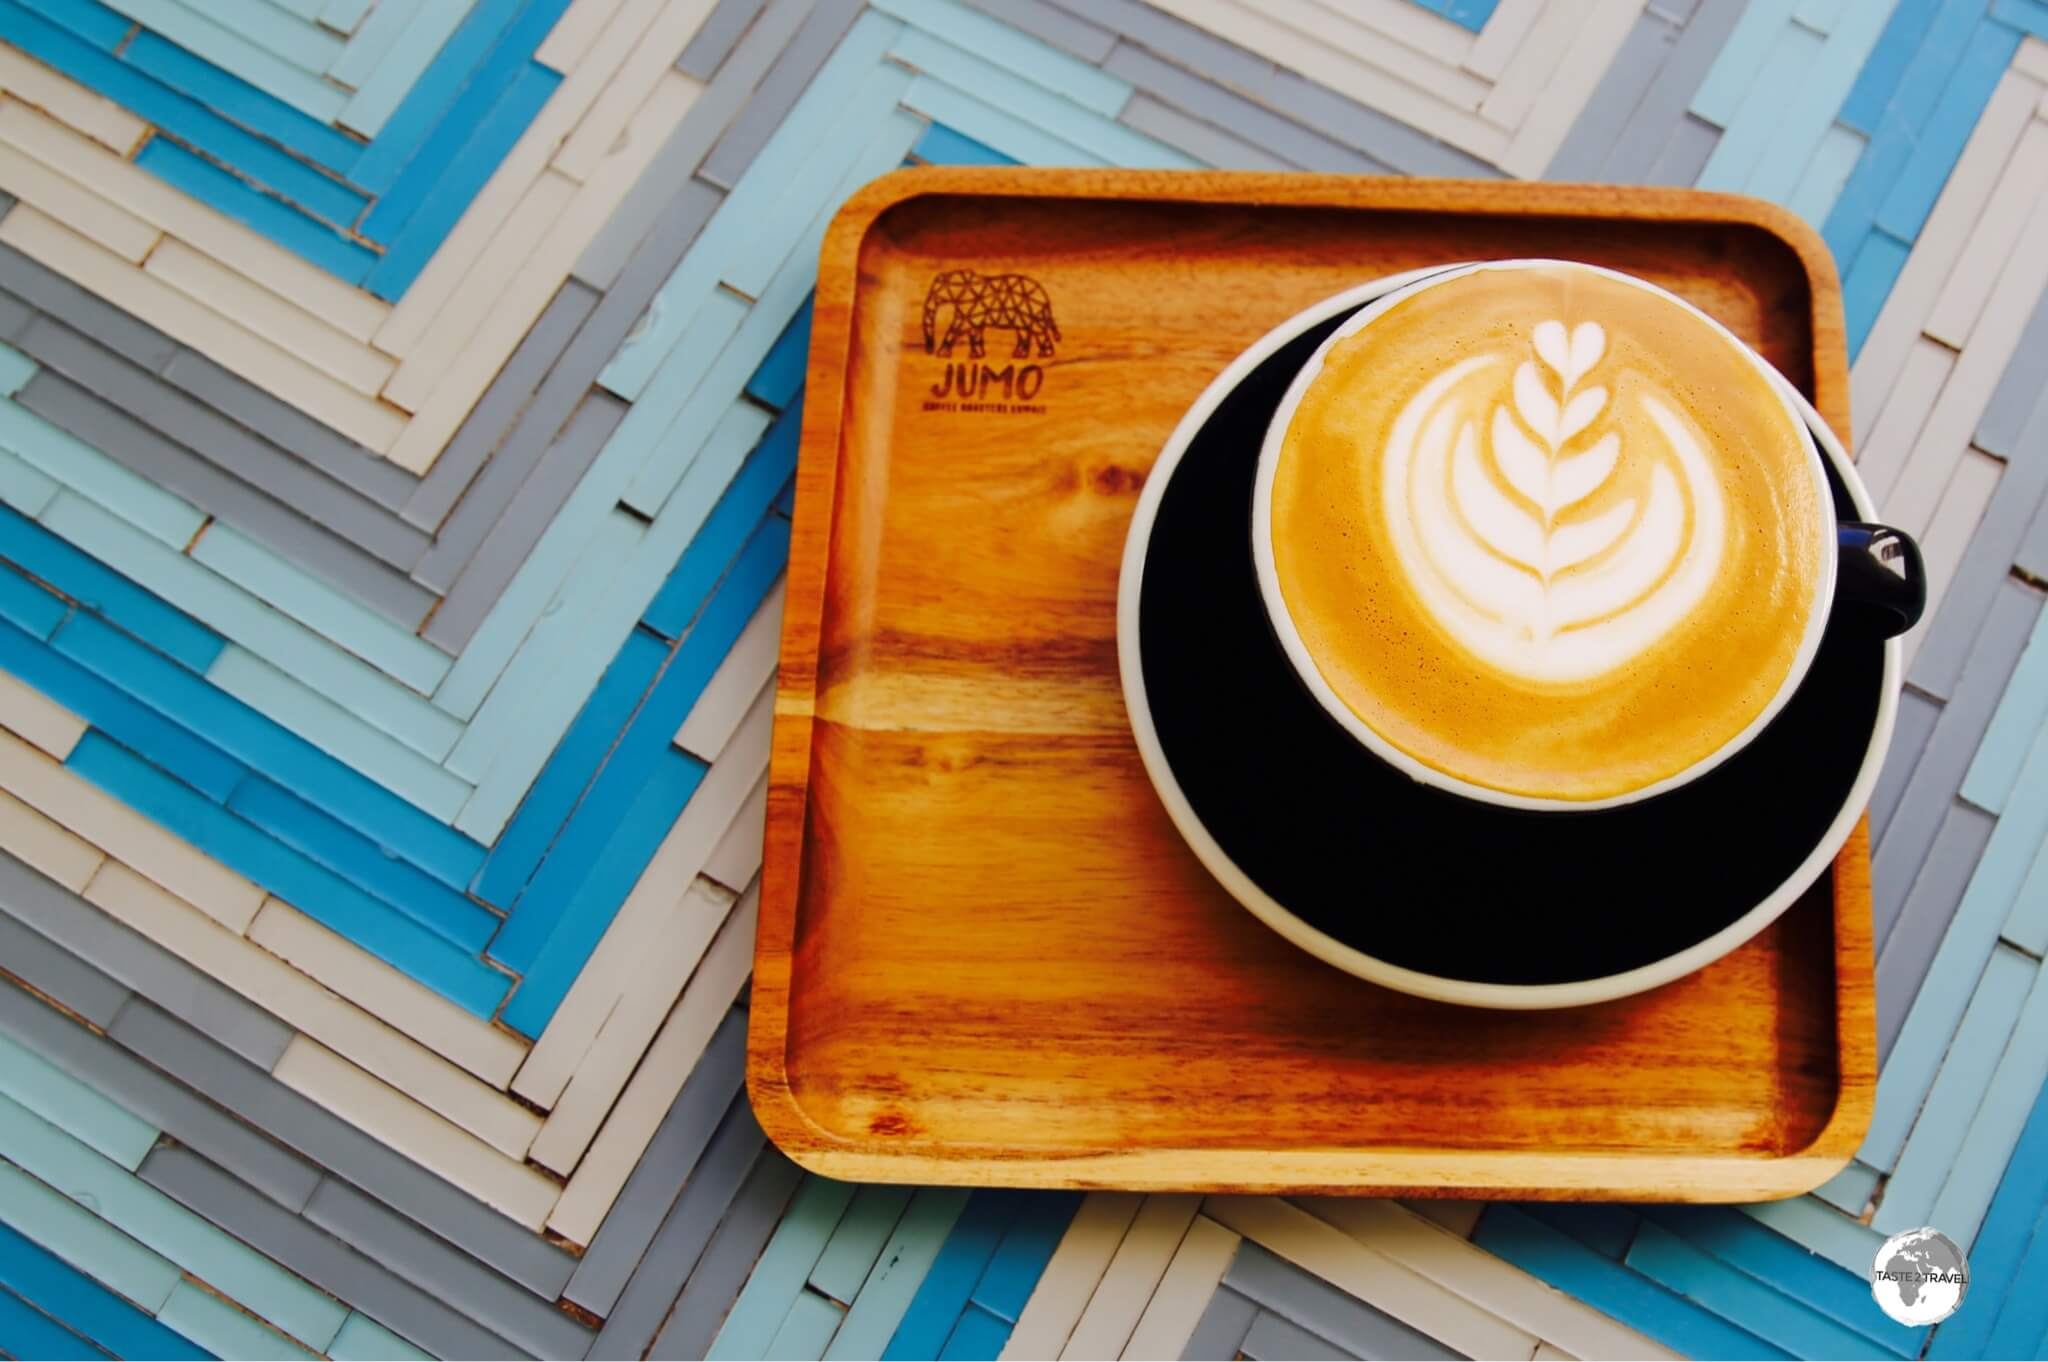 A divine cafe latte served at Jumo Coffee Roasters.